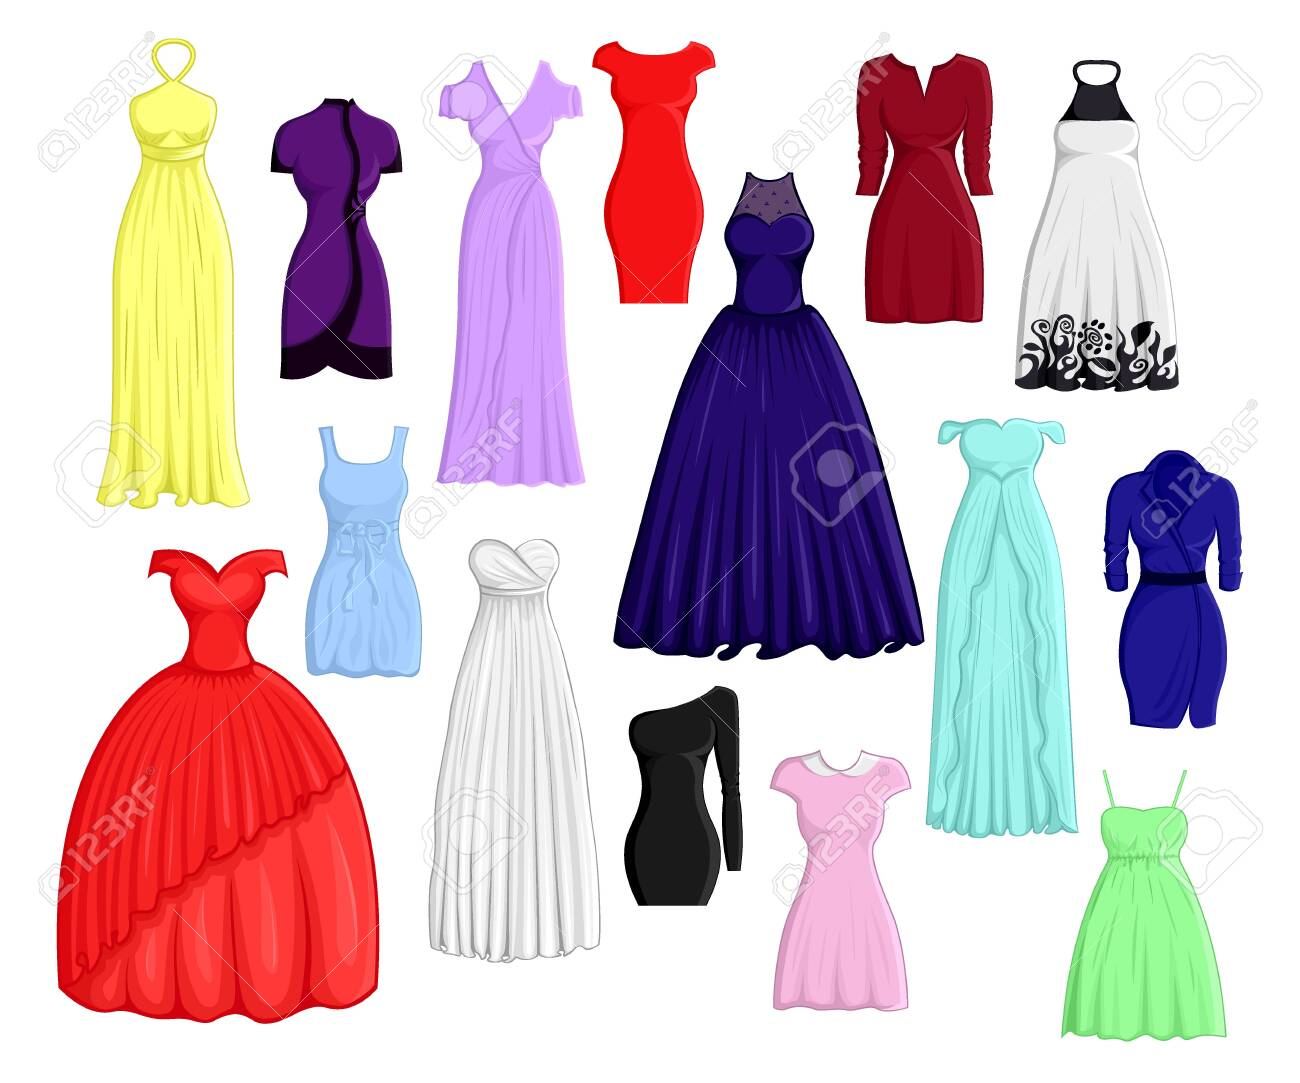 A set of dresses in different colors and styles - 137306918